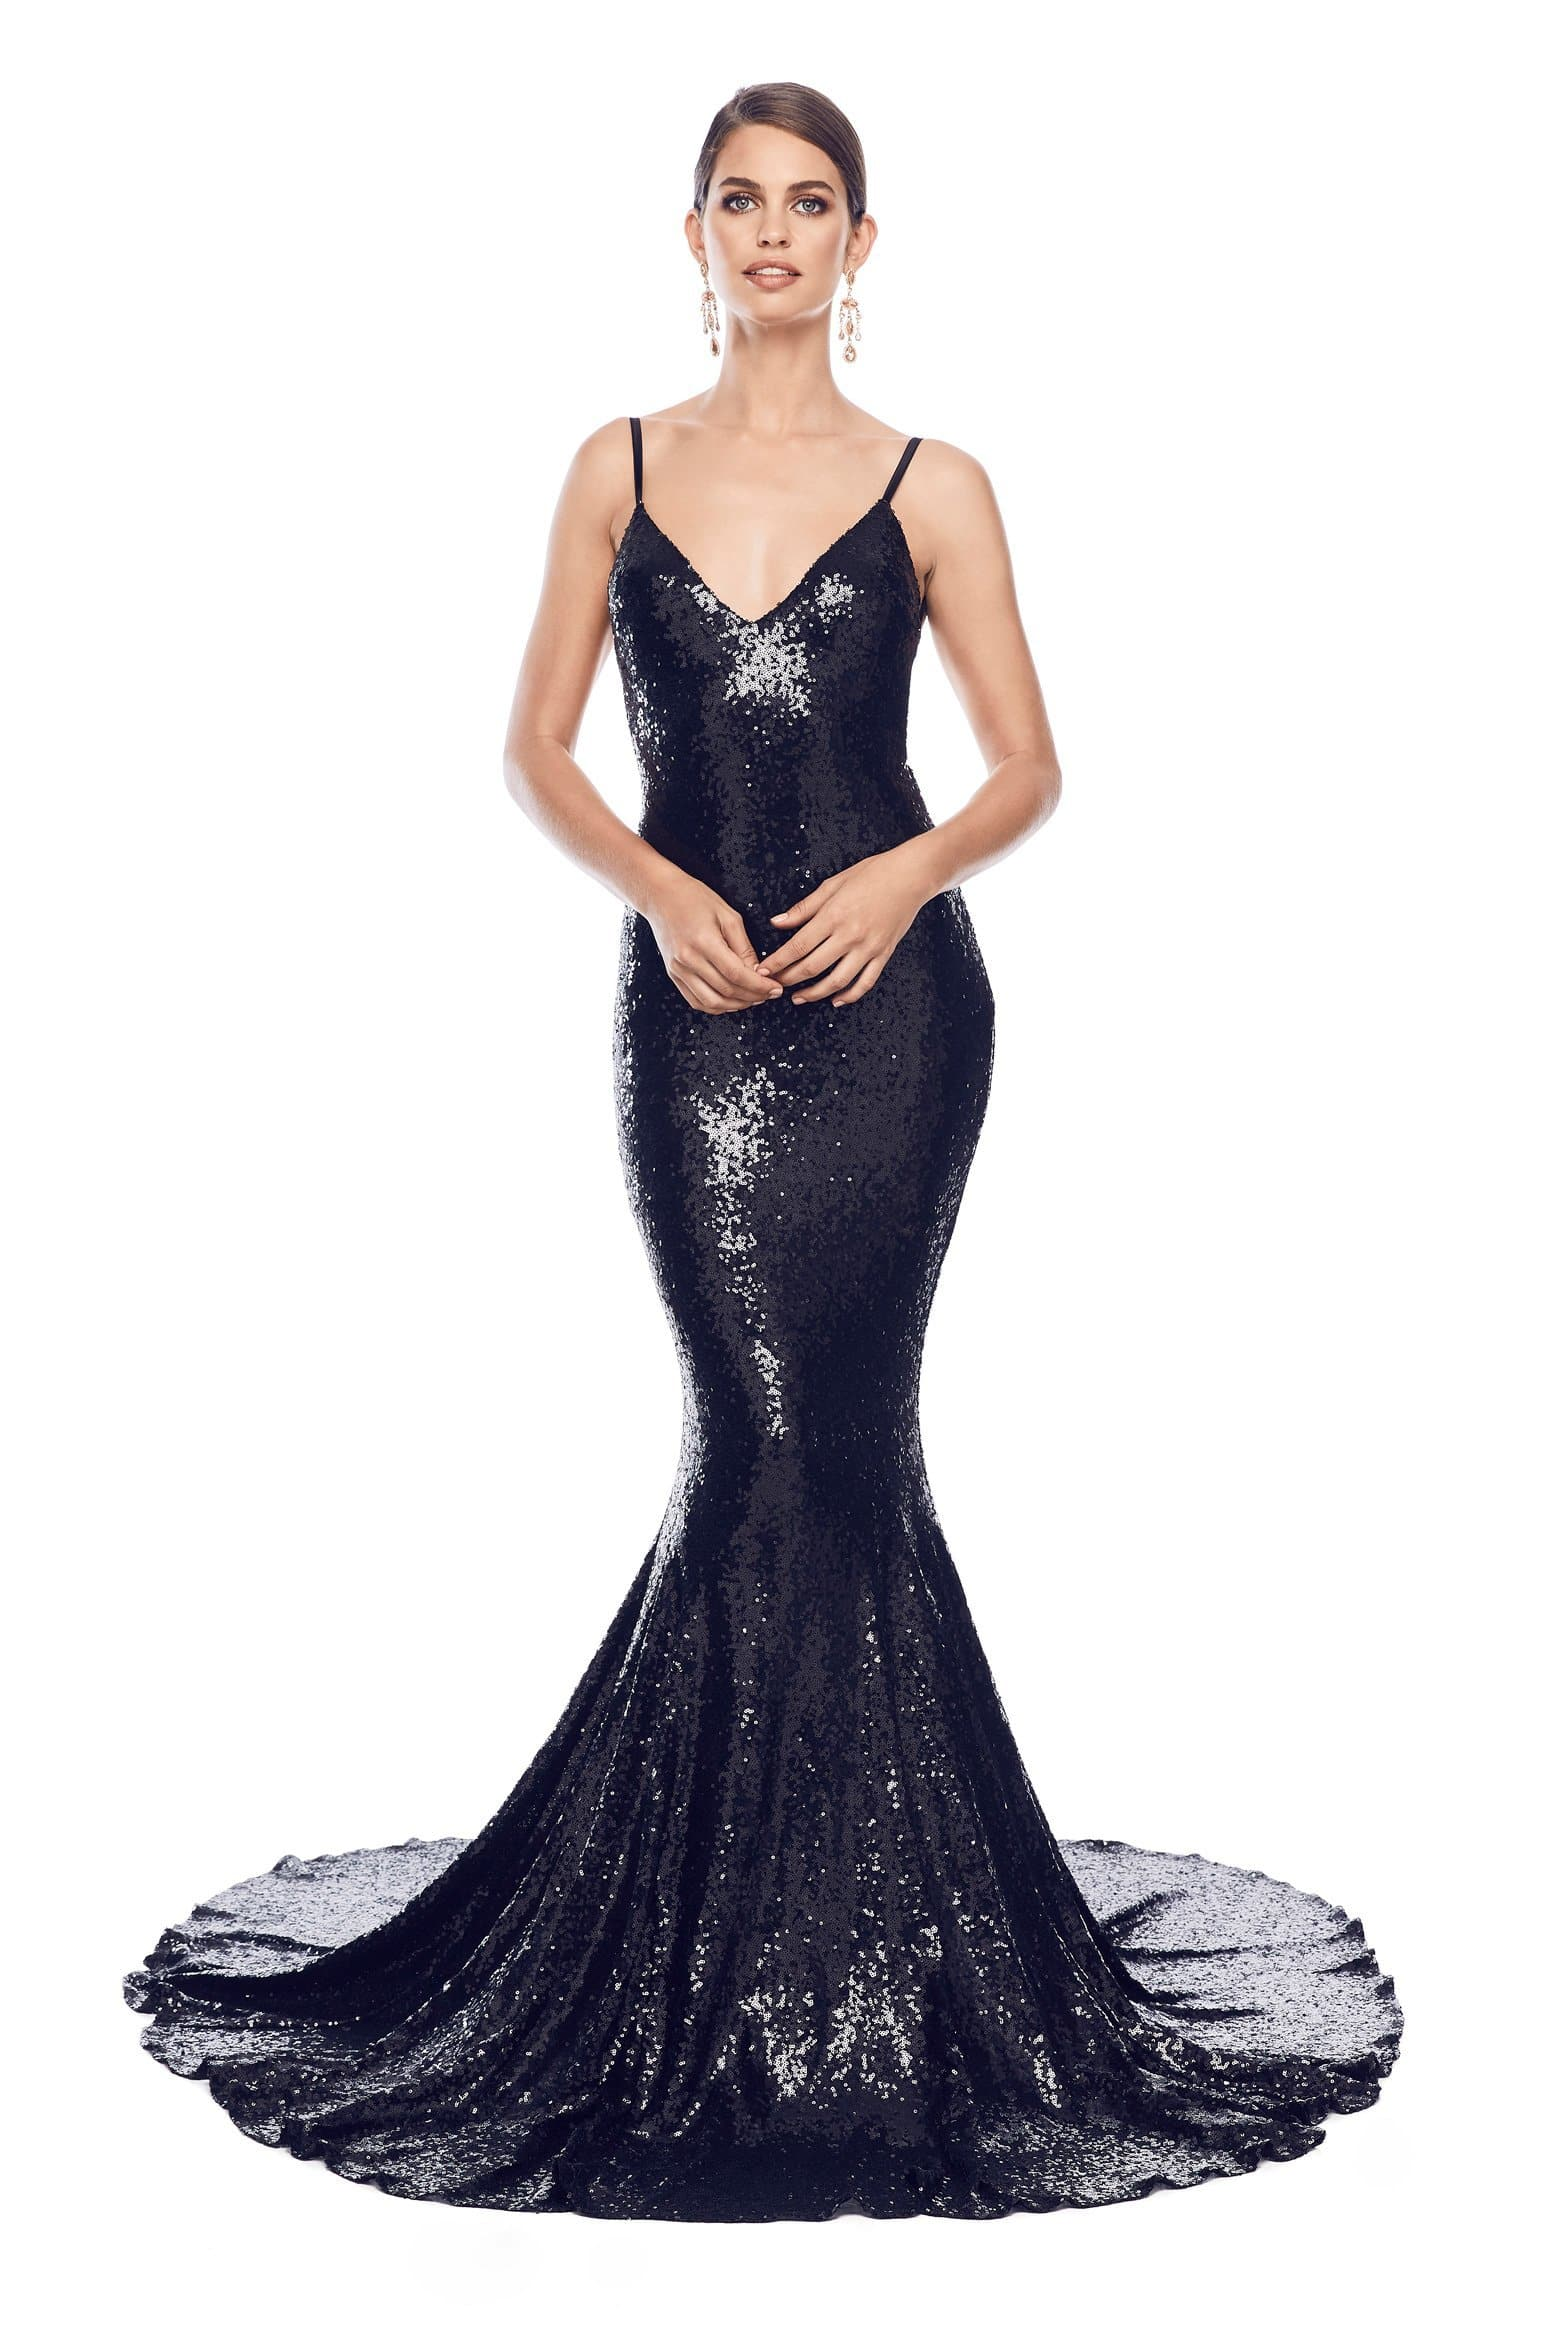 Yassmine Luxe - Black Sequin Gown with Mermaid Tail & Open Back